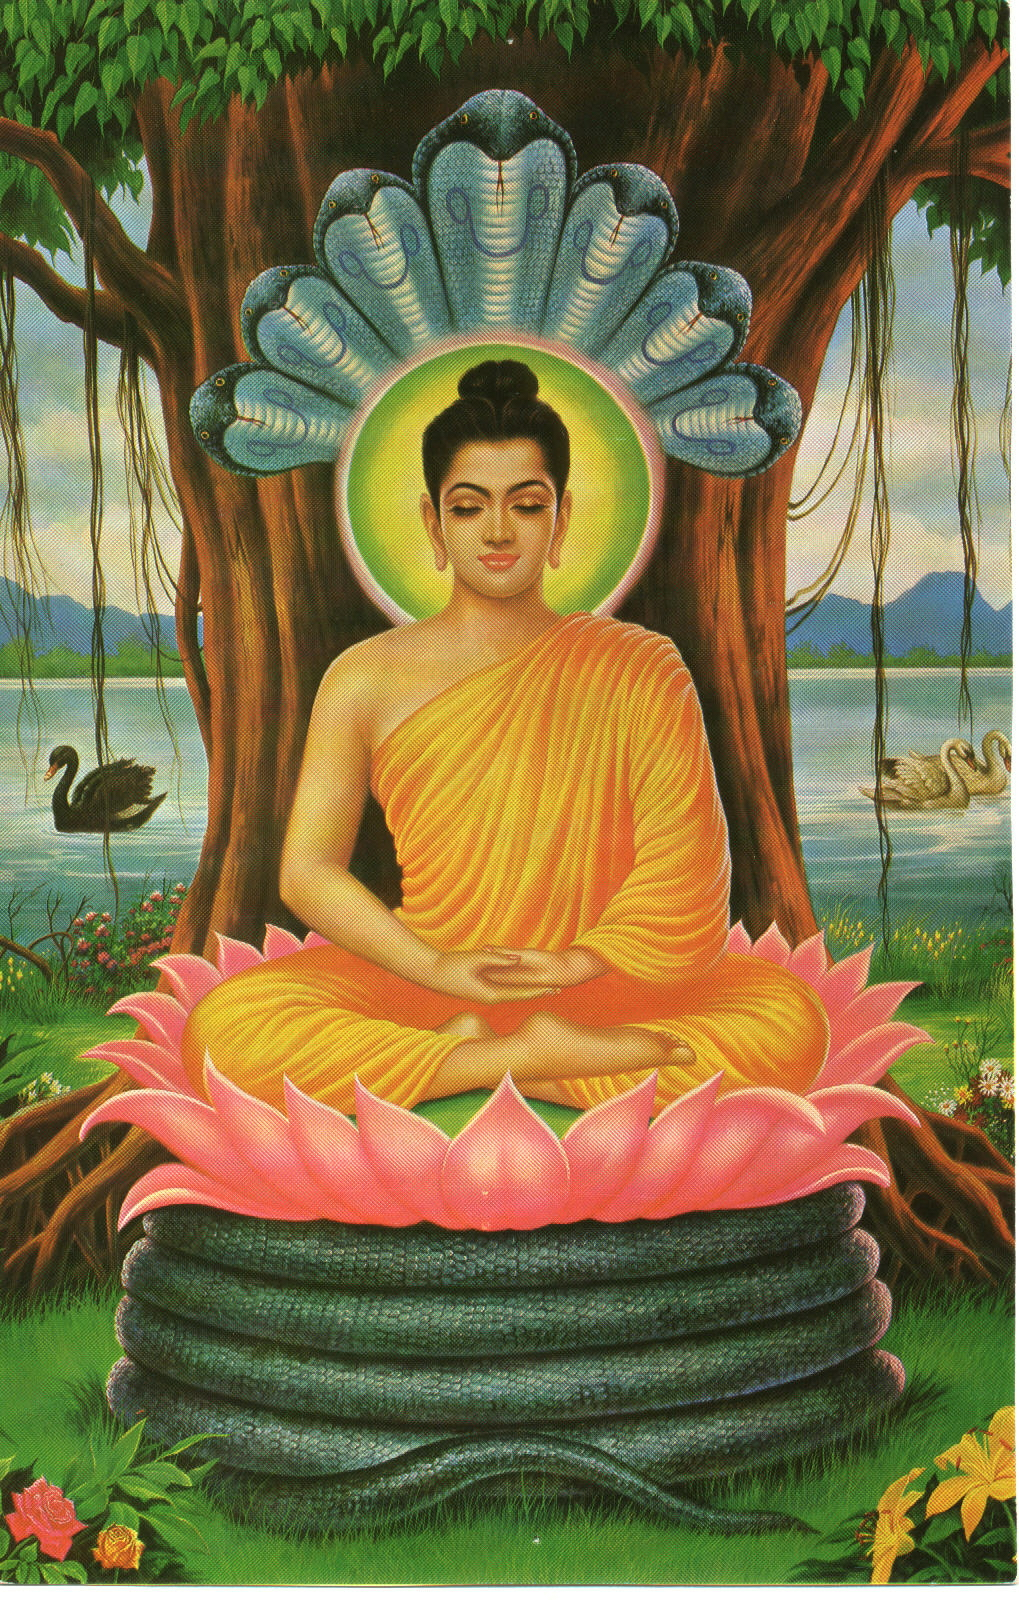 a biography of siddhartha gautama the buddha an indian spiritual leader A brief overview of the life of buddha  little is known about the buddha's early life no biography was written during  he was given the name siddhartha gautama.